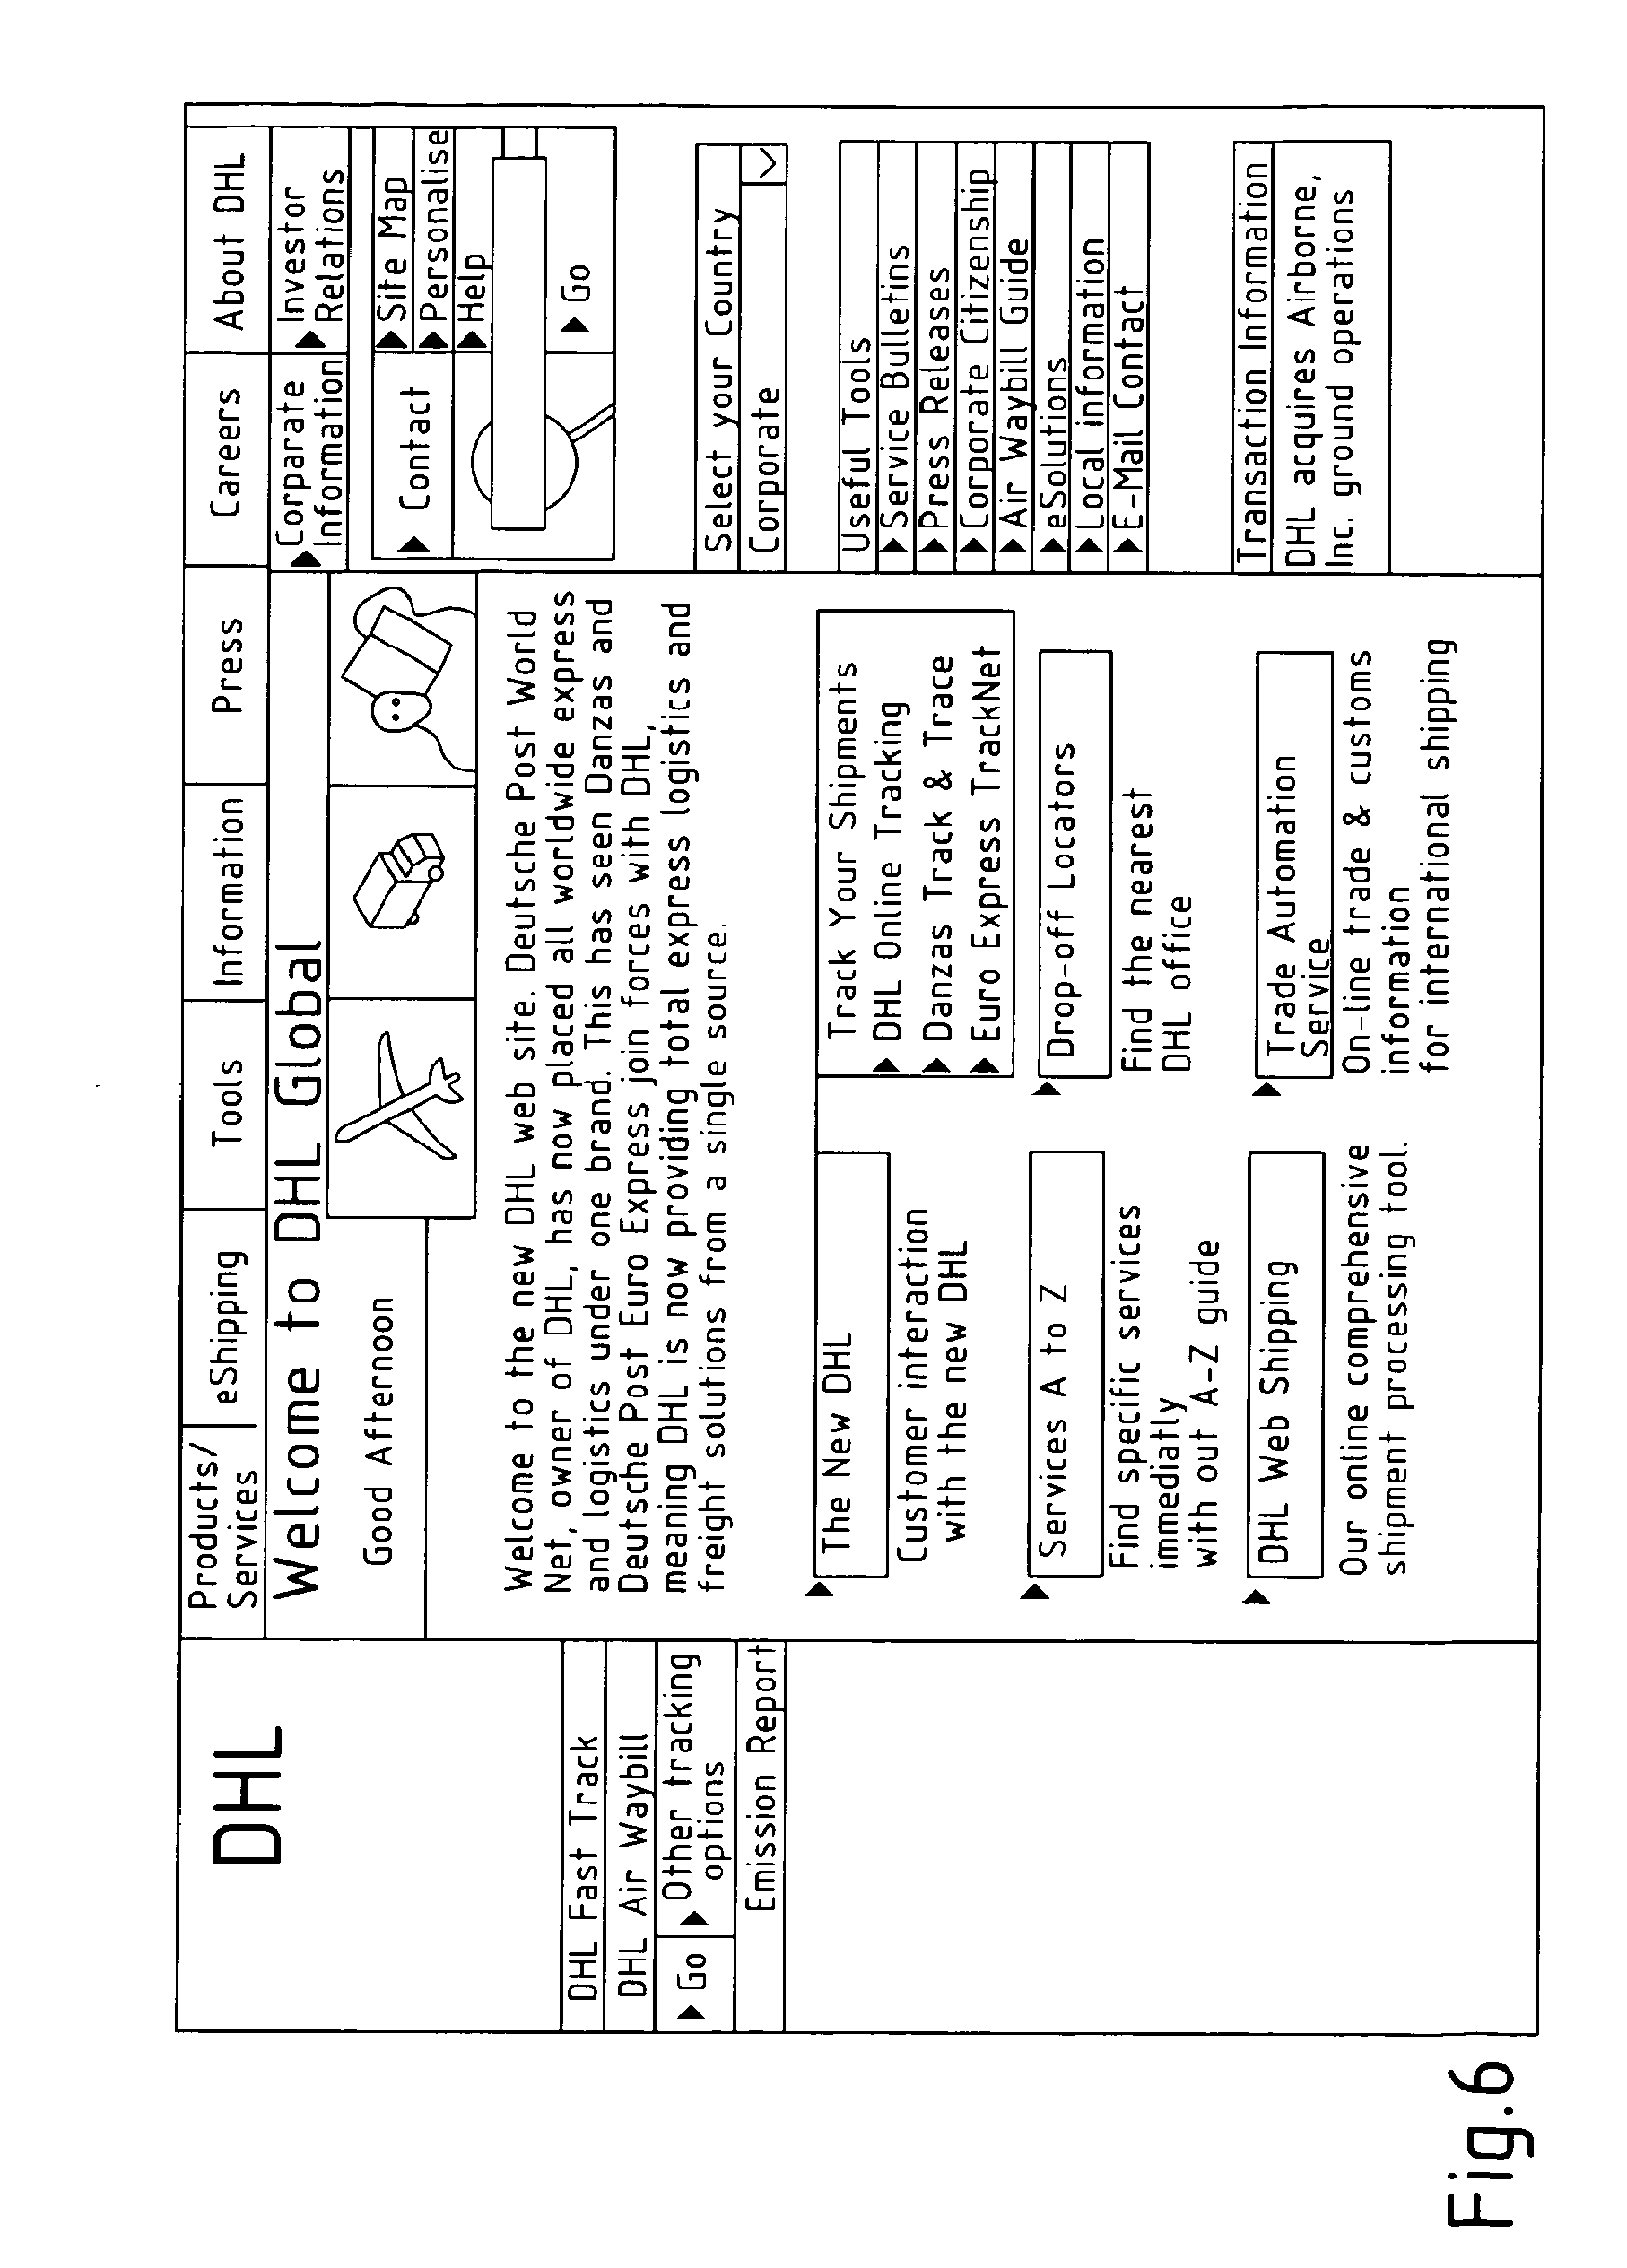 Dhl air express airway bill instructions - Patent Drawing